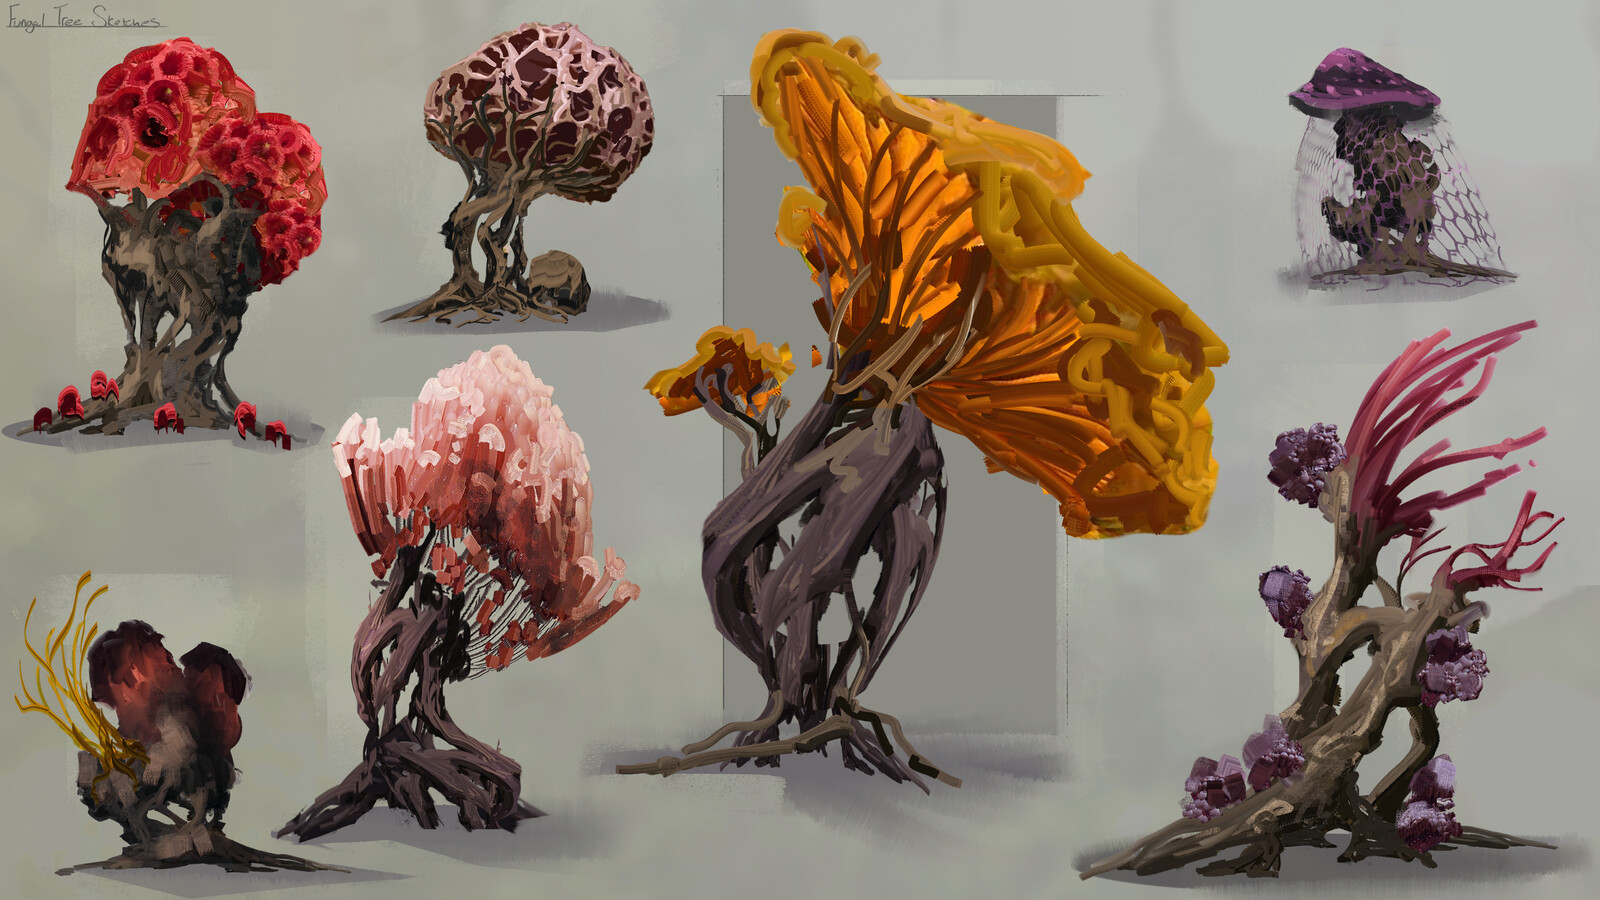 Fungal Tree sketches